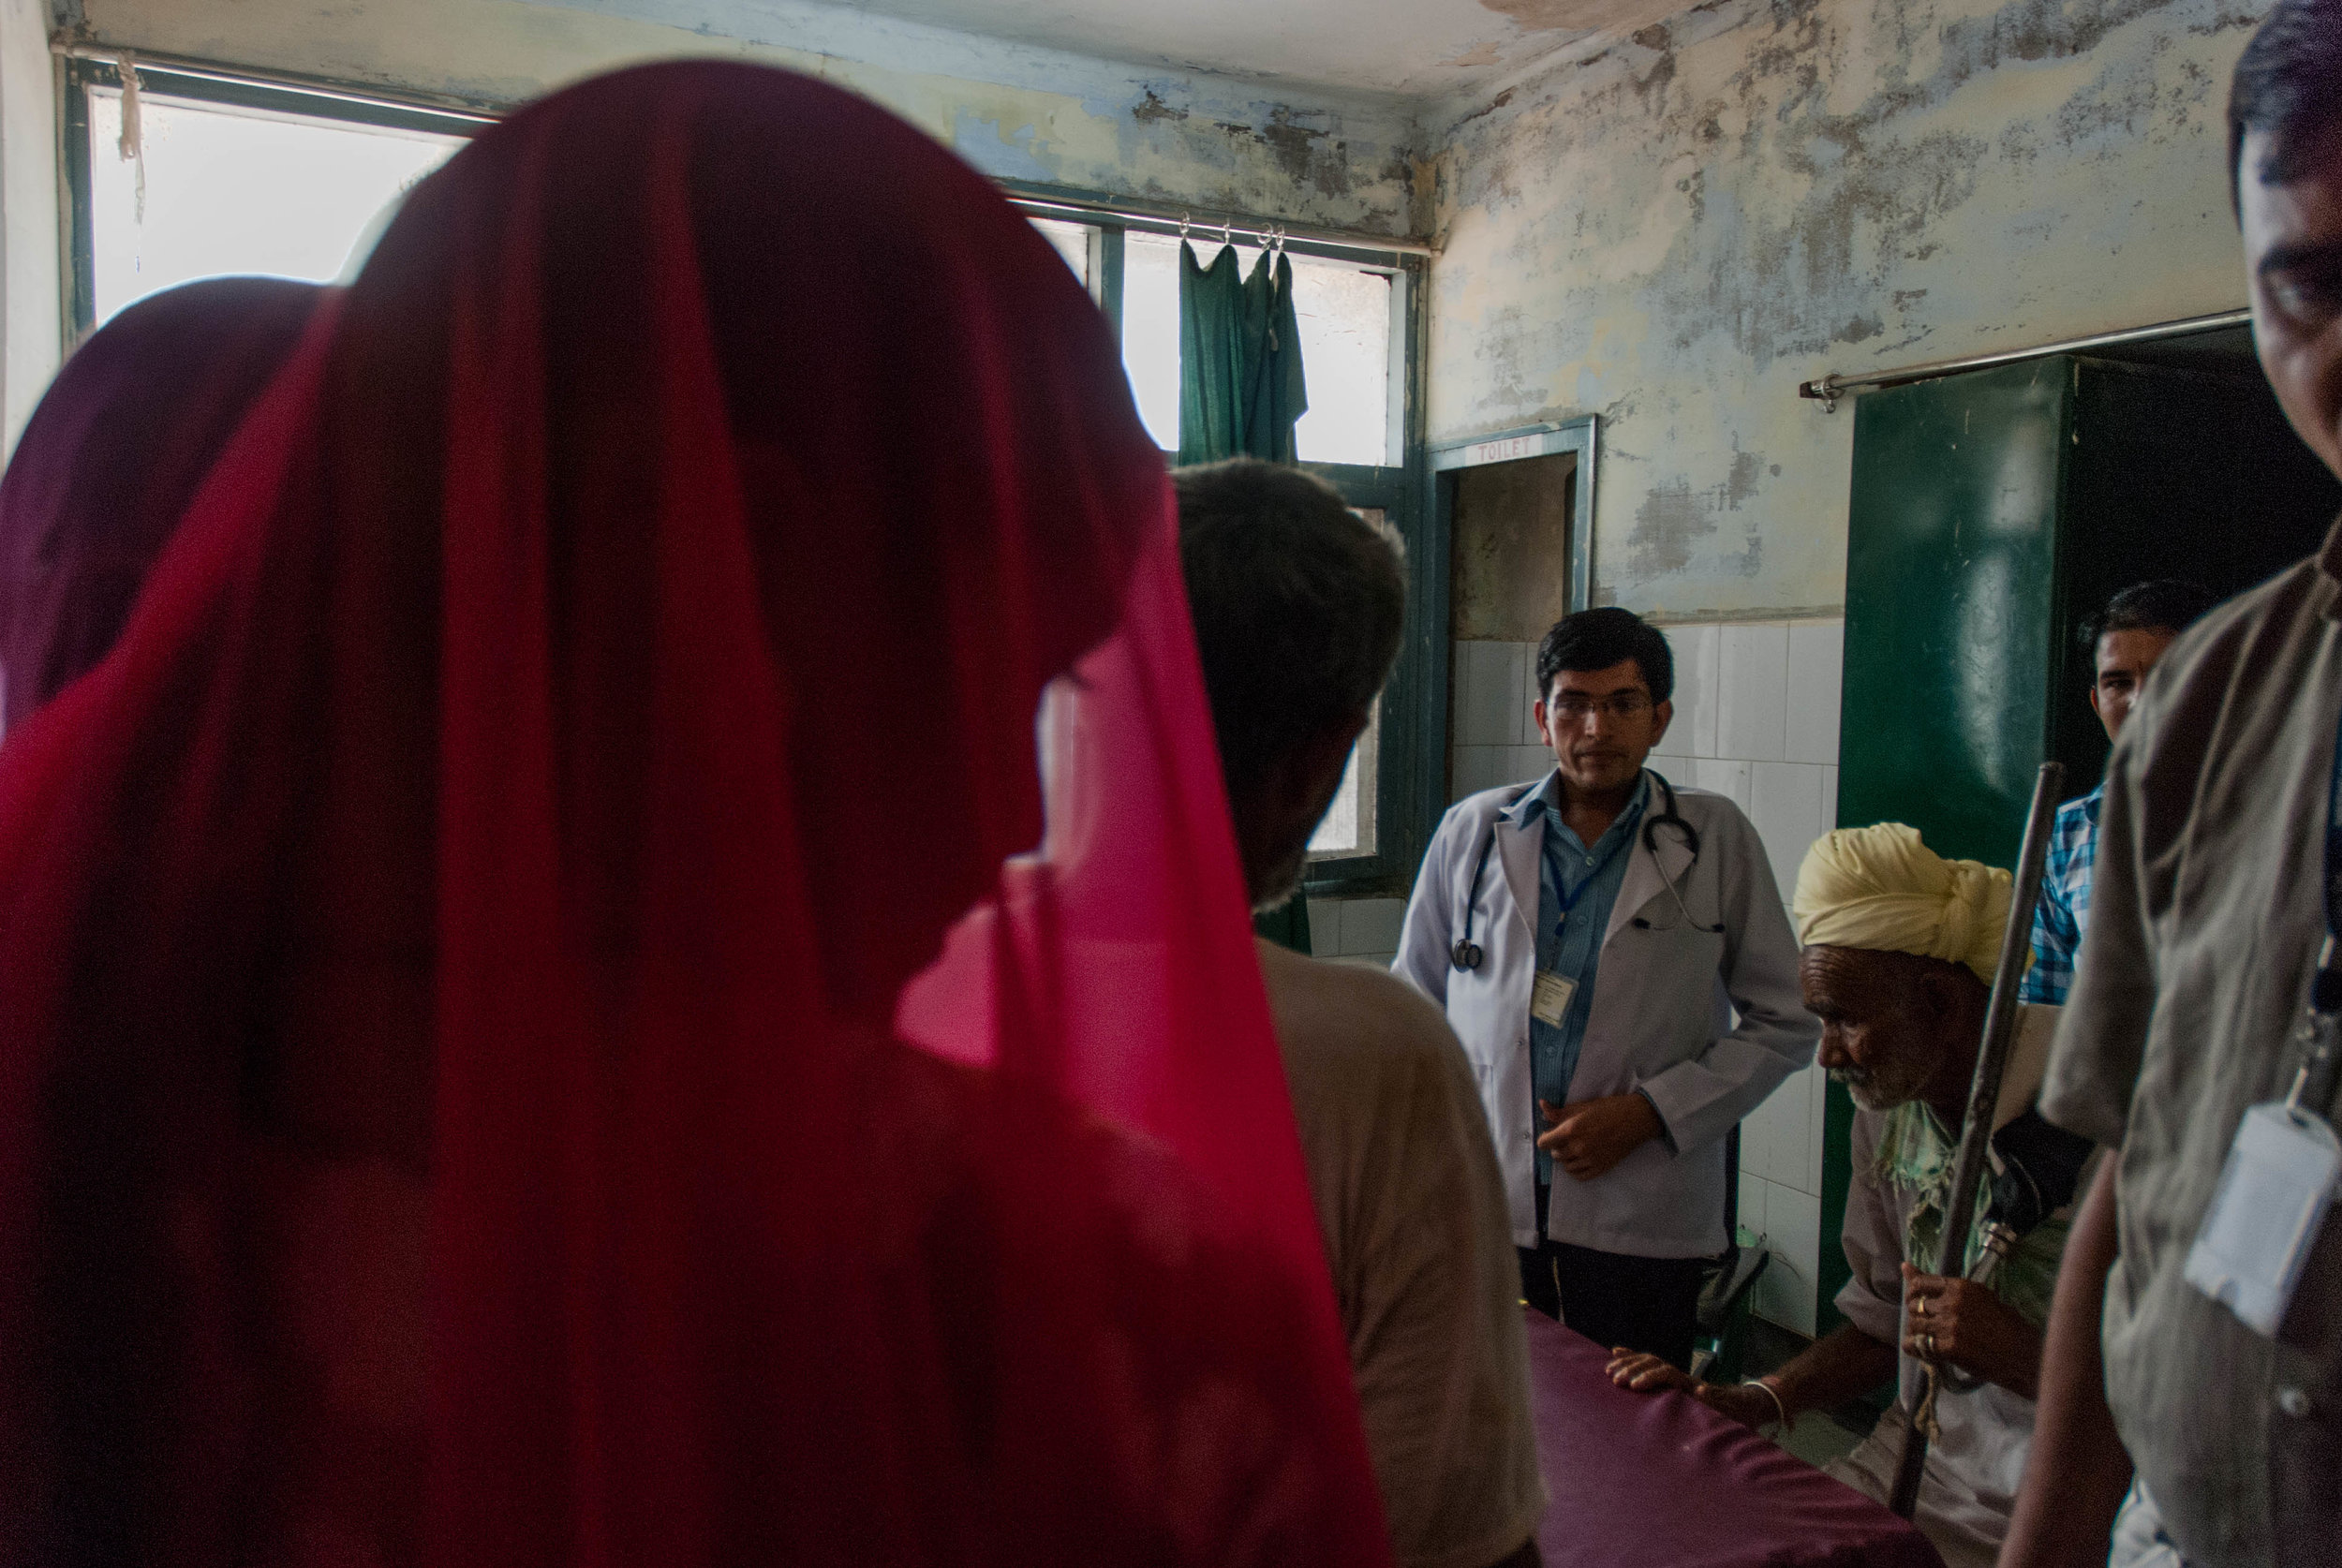 Doctors' offices are often crowded with patients, both locals of Bikaner and those who have traveled across states, who come in search for free diagnosis and medical treatment.